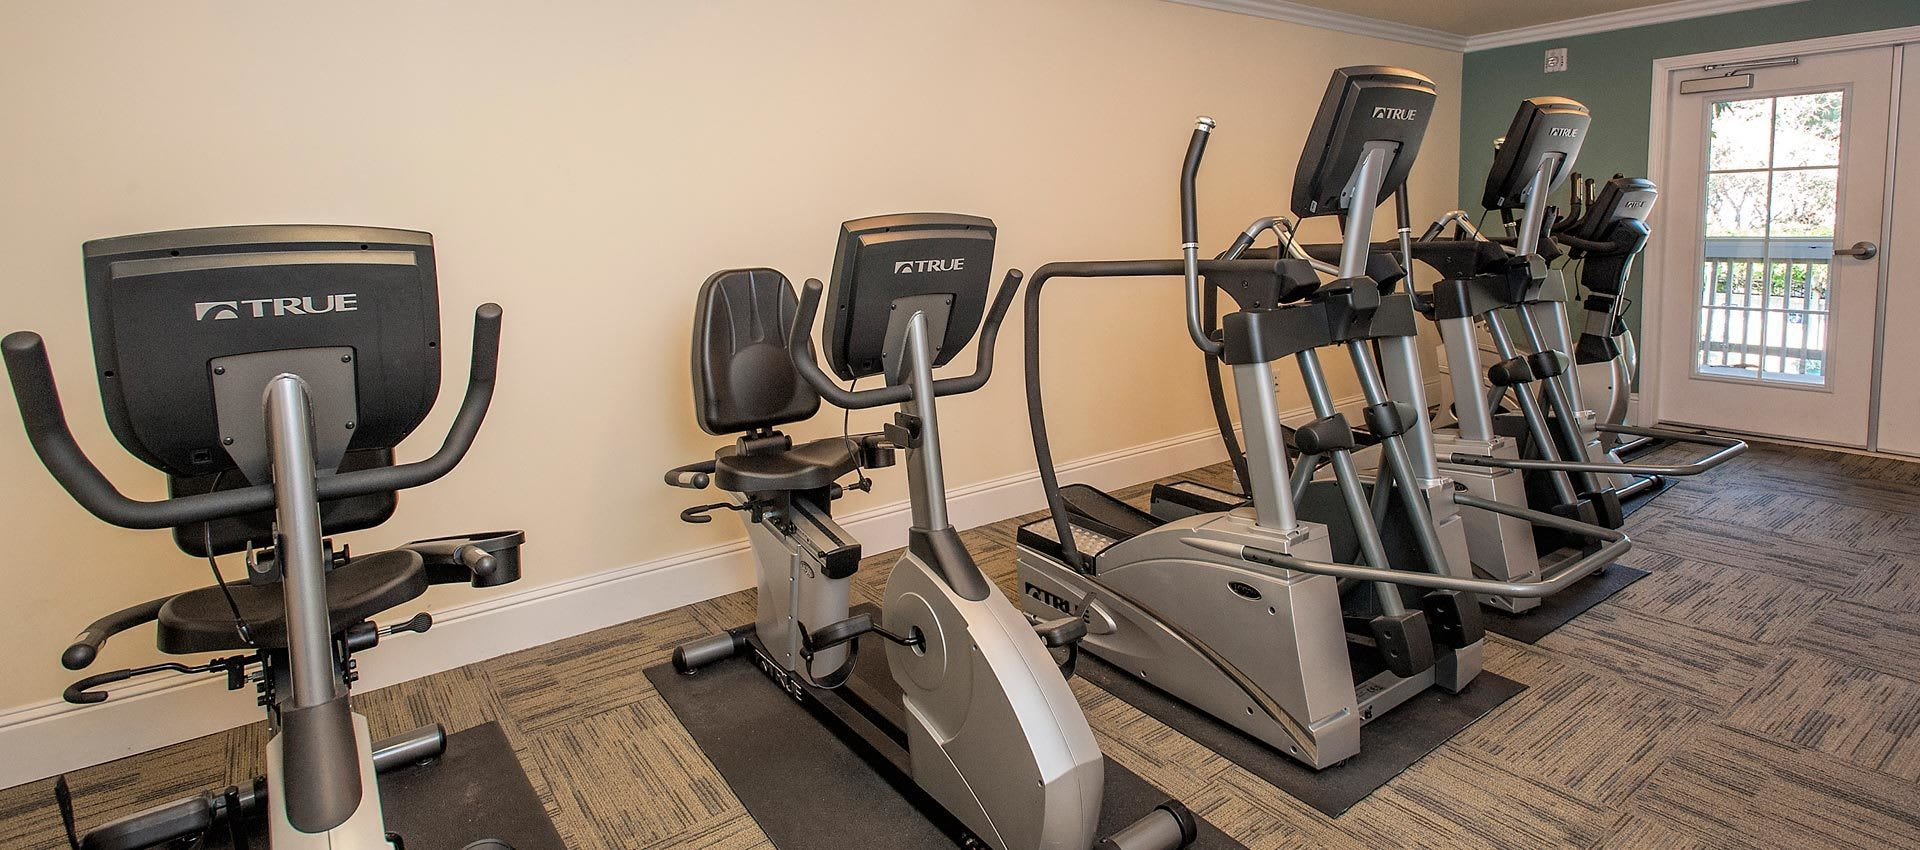 Fitness Center at apartments in Martinez, CA